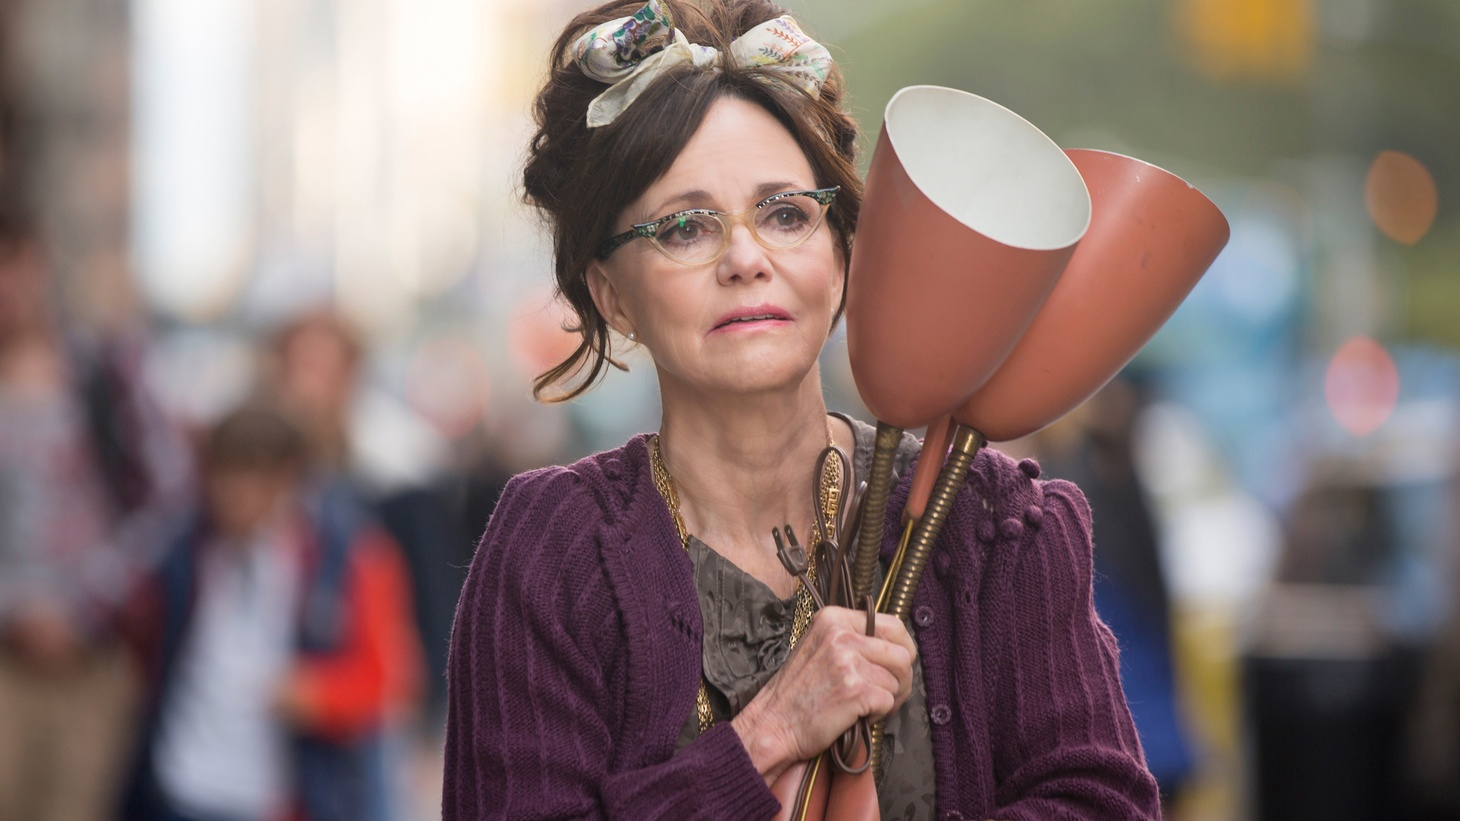 It's been two decades since Sally Field headlined a film, but now she stars as the title role in Michael Showalter's new indie dramedy, Hello, My Name Is Doris. Field and Showalter share why they were drawn to the project, and how they filmed it in under a month.